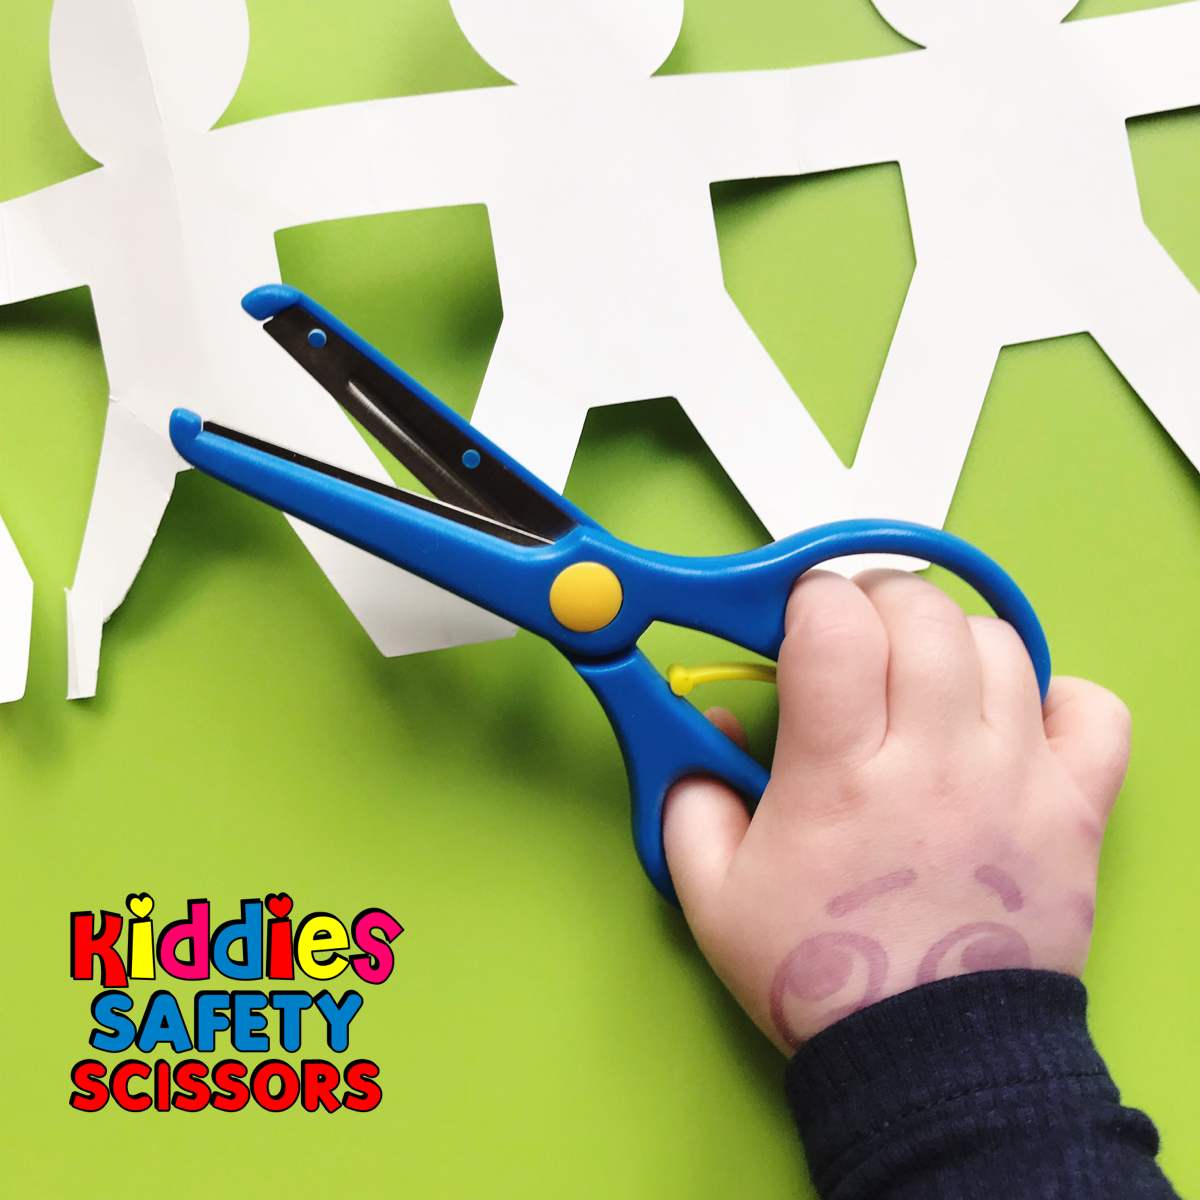 Kiddies Safety Scissors SCISSORS